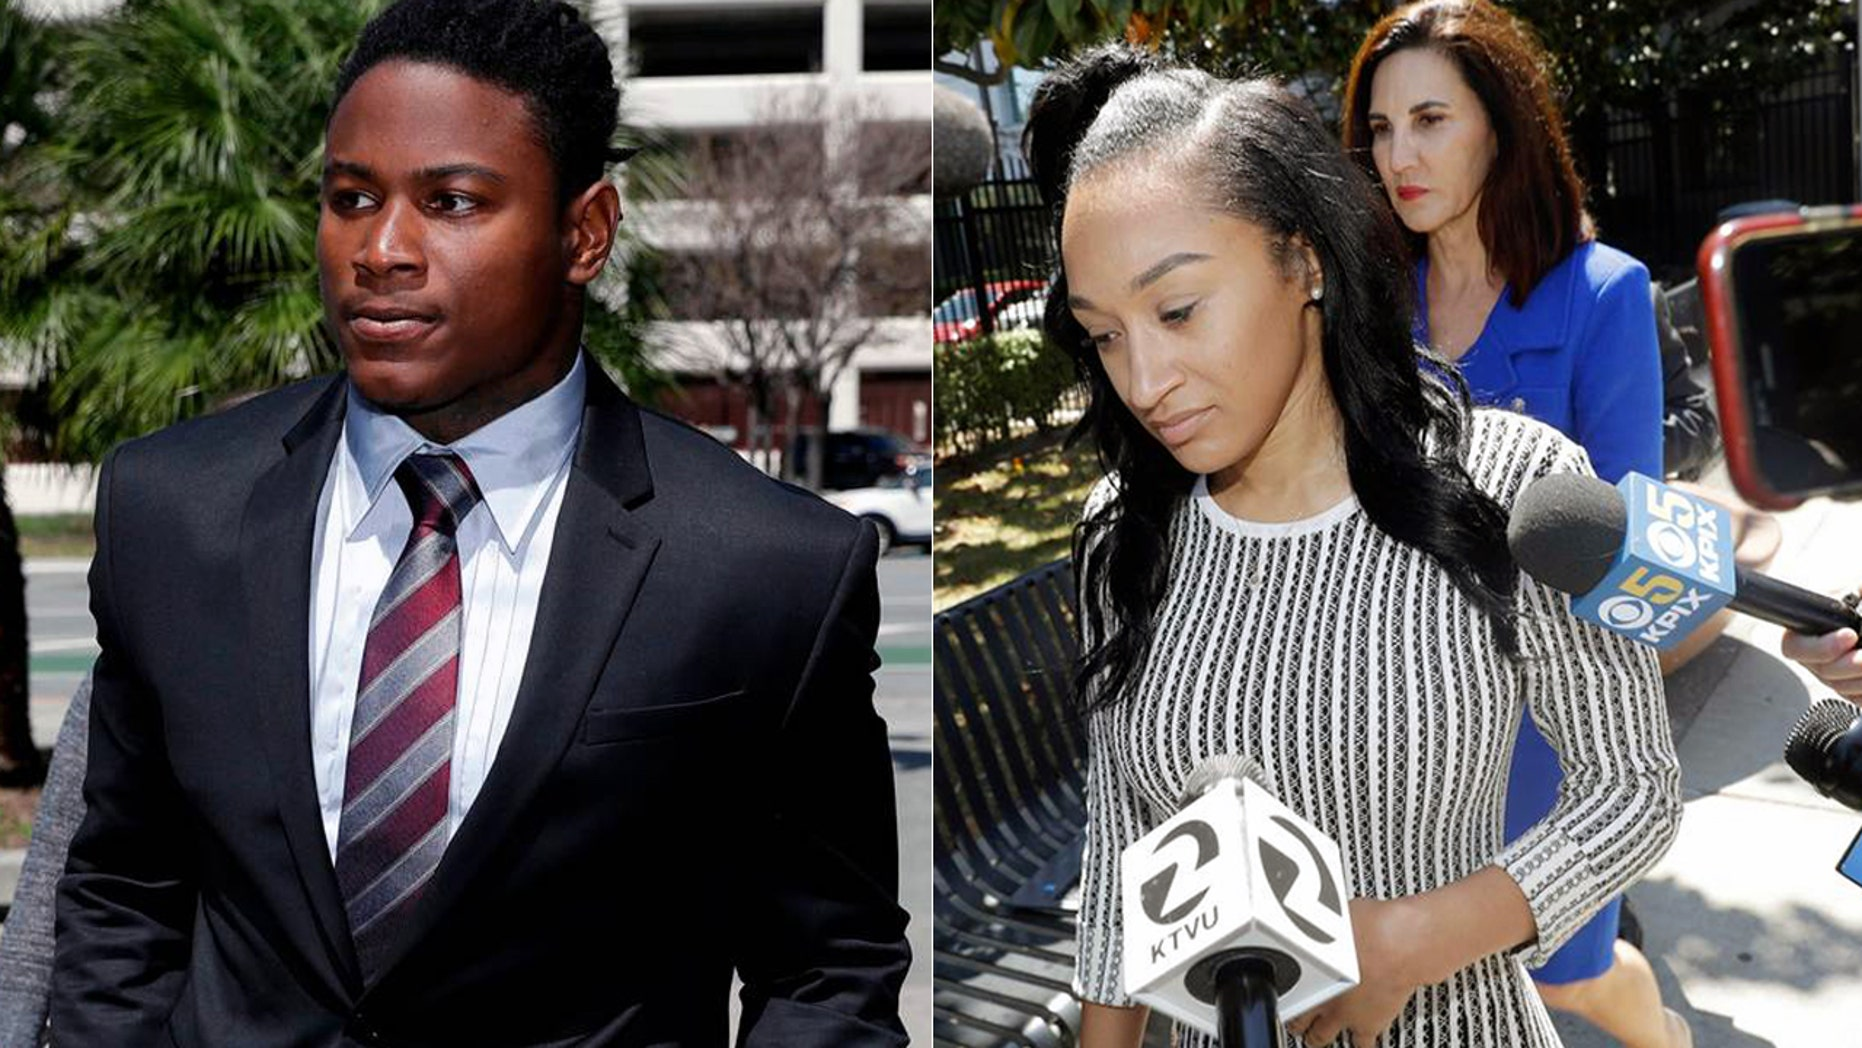 At left, Reuben Foster walks into court last month. At right, Elissa Ennis leaves court with attorney Stephanie Rickard Thursday.